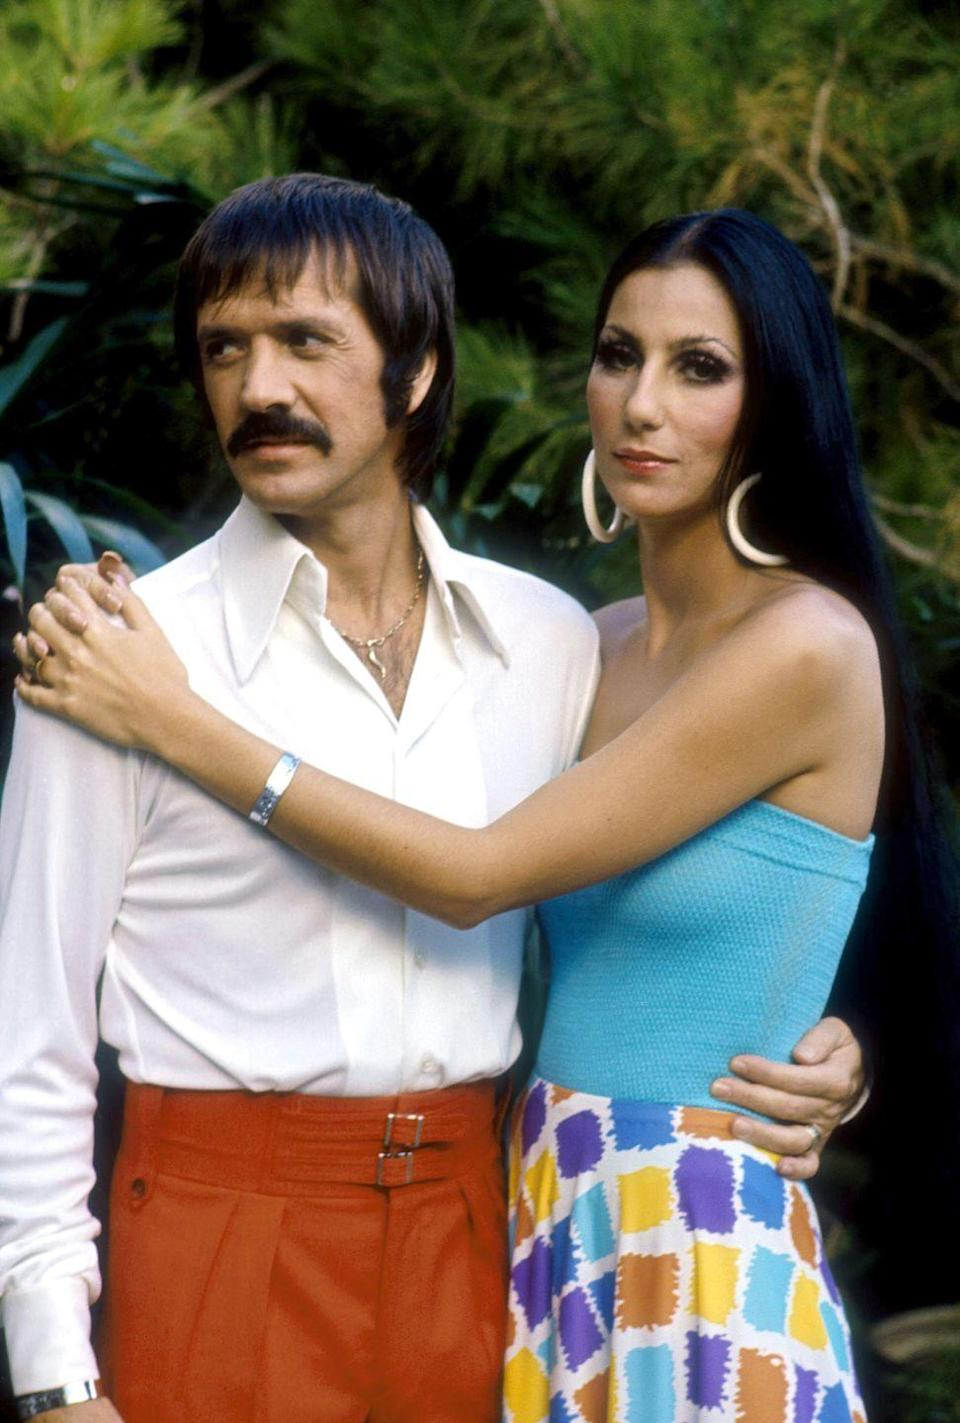 <p>Wearing white hoop earrings, a blue tube top, and printed skirt in a promotional photo for <em>The Sonny and Cher Show</em>.</p>